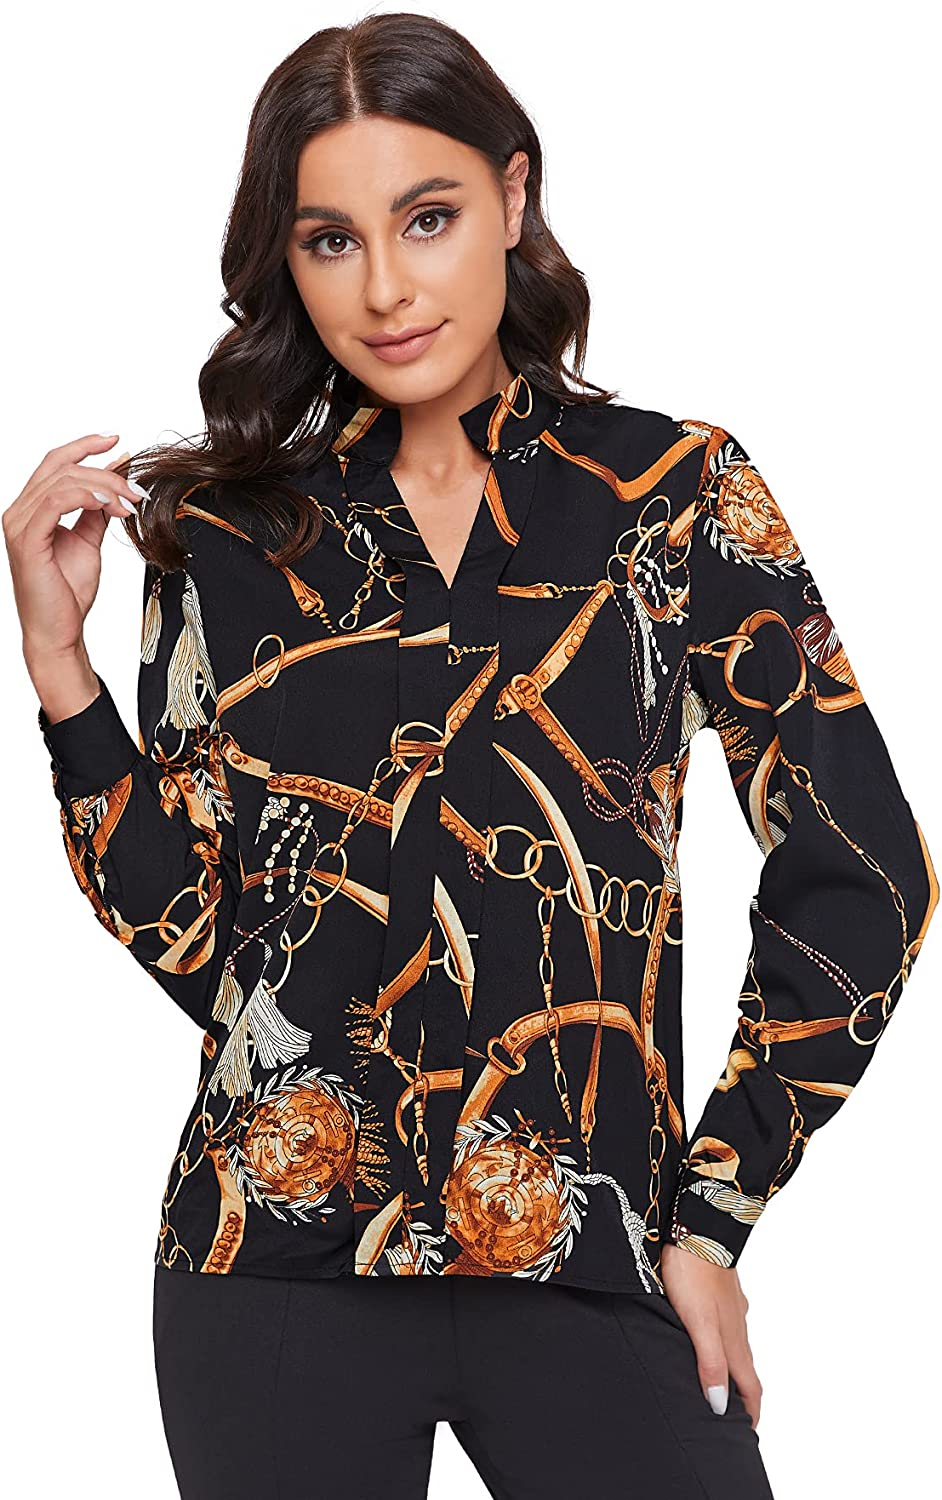 SheIn Women's Casual V Neck Long Sleeve Floral Tops Button Down Work Blouses